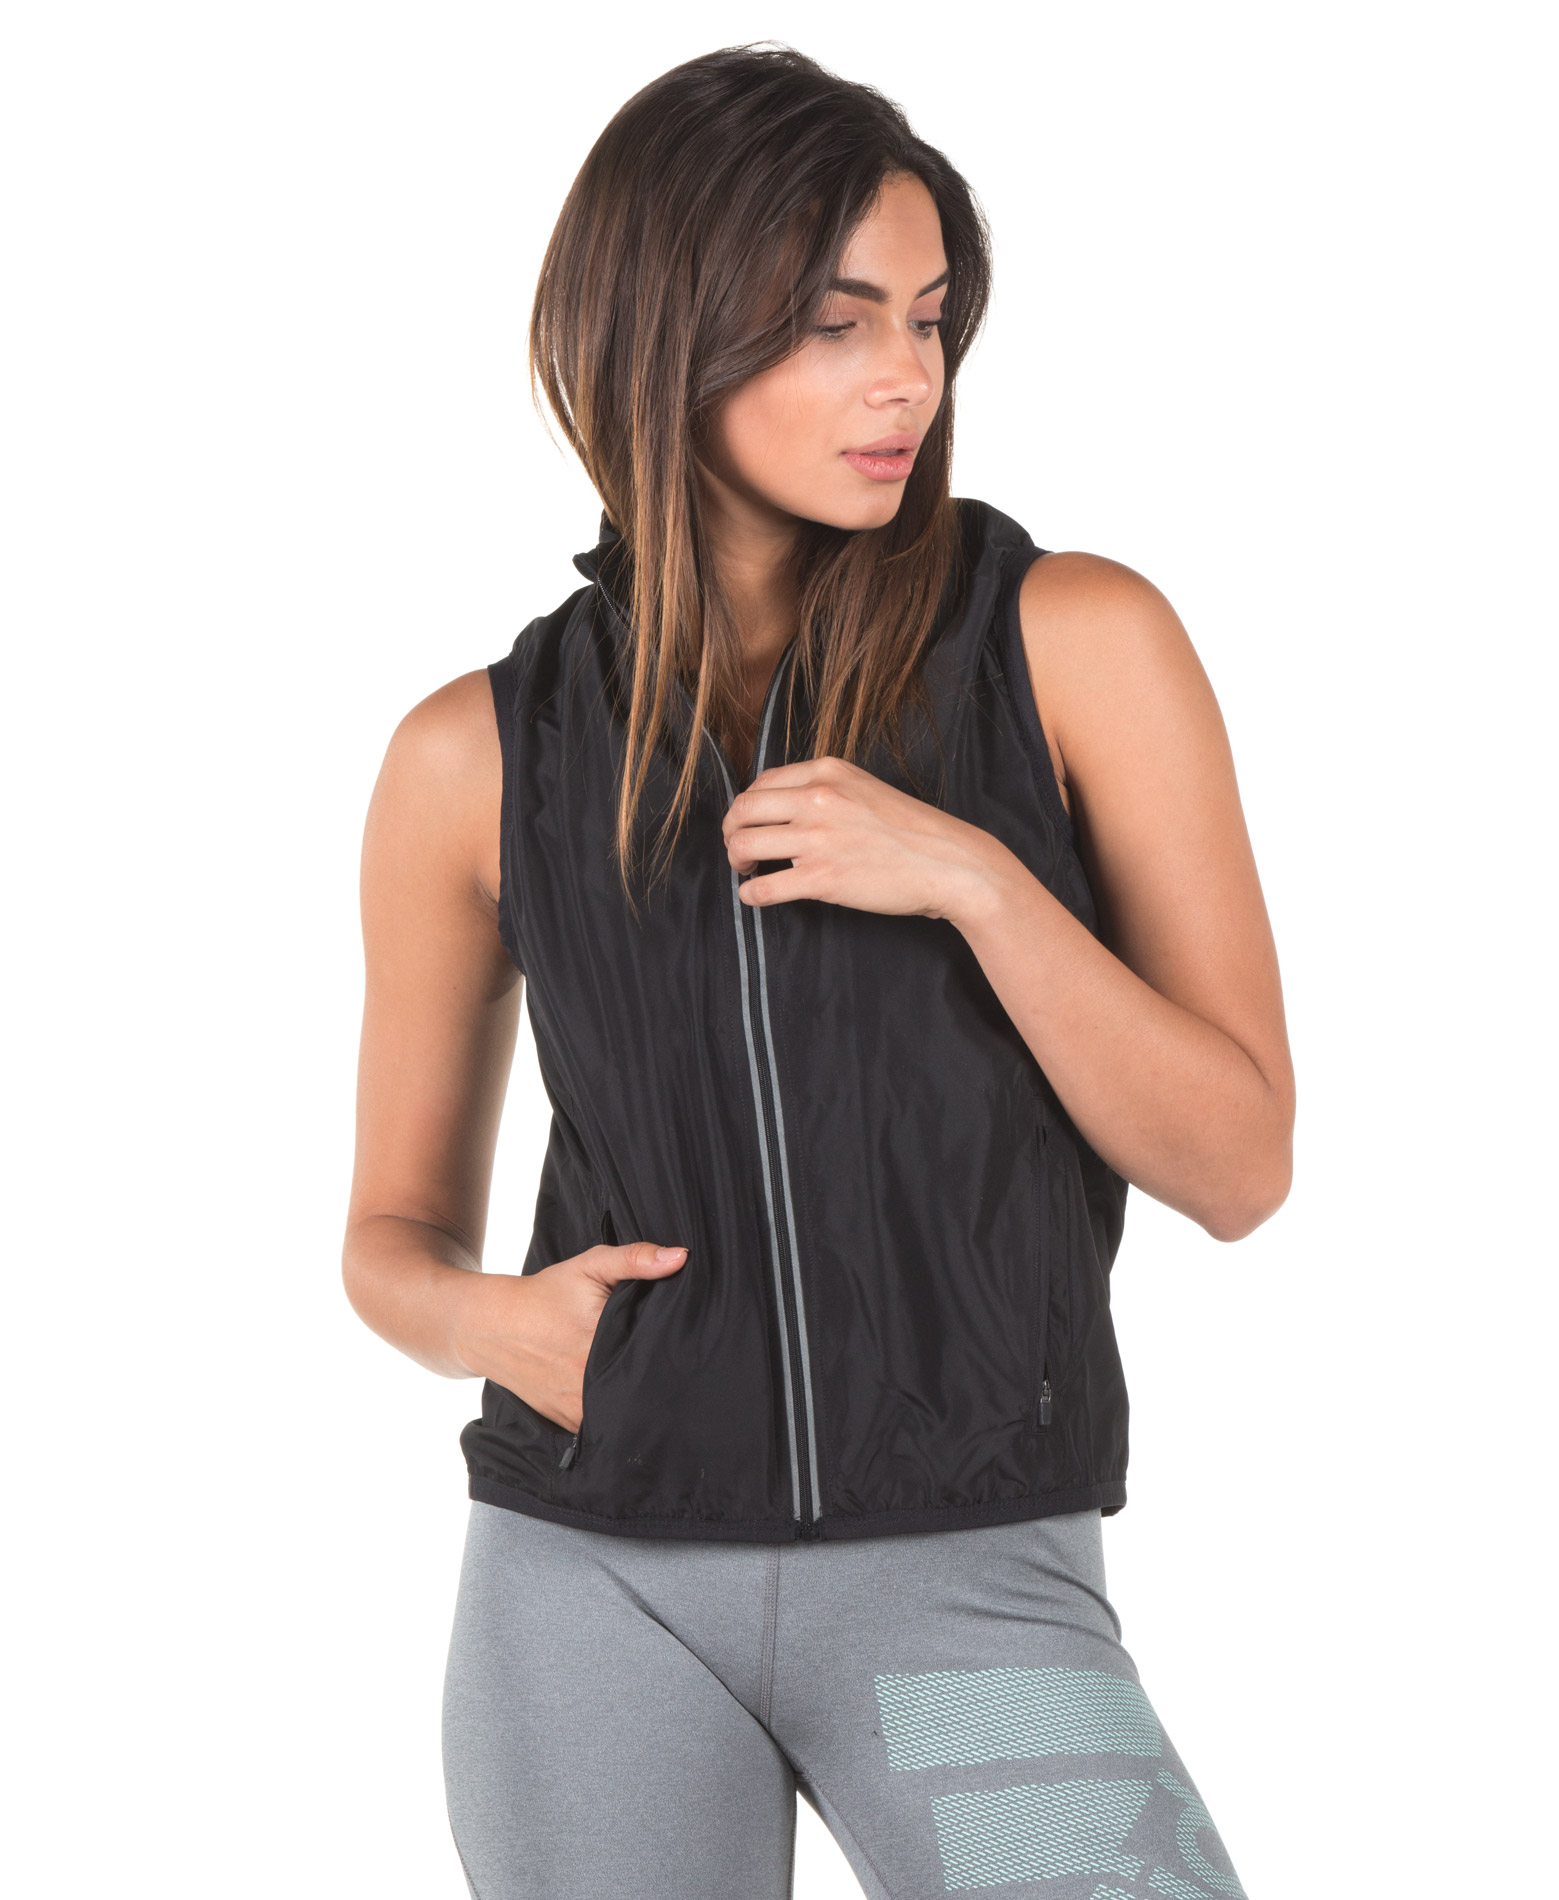 SPALDING LADIES EXHILARATION GILET 0S6006-36 Μαύρο